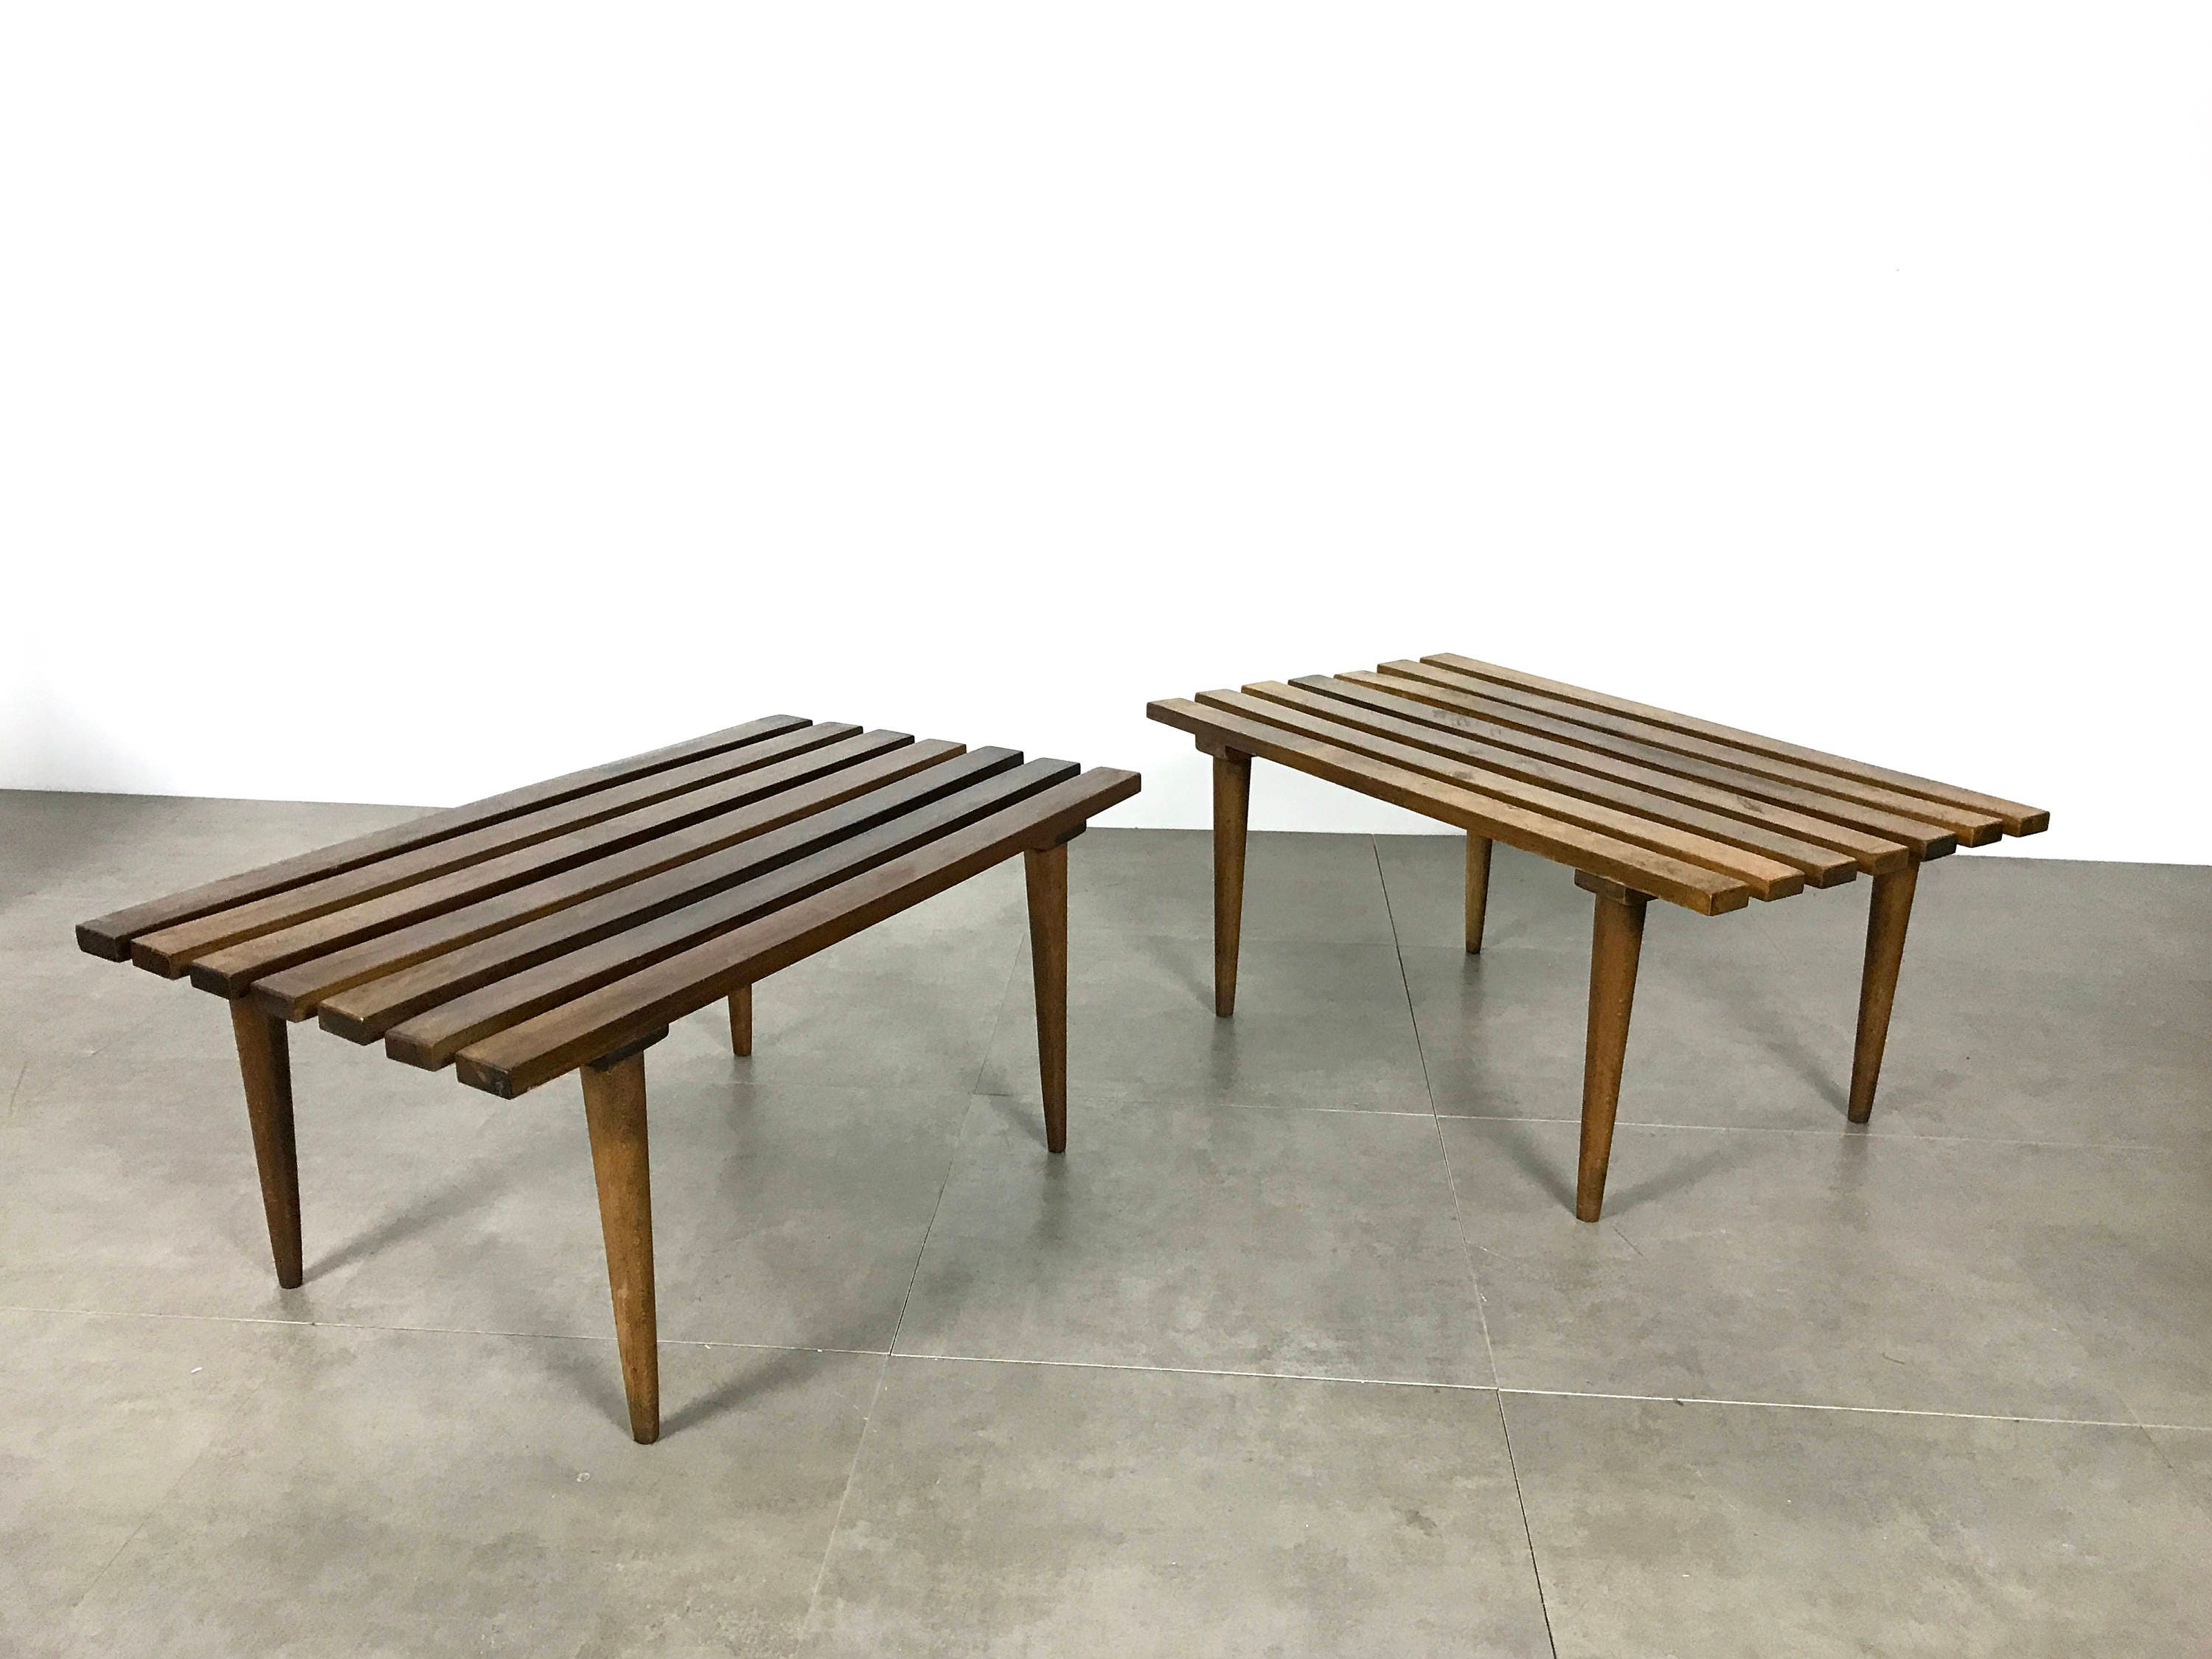 ON HOLD Pair Mid Century Modern Italian Slat Benches or Tables 1960 s